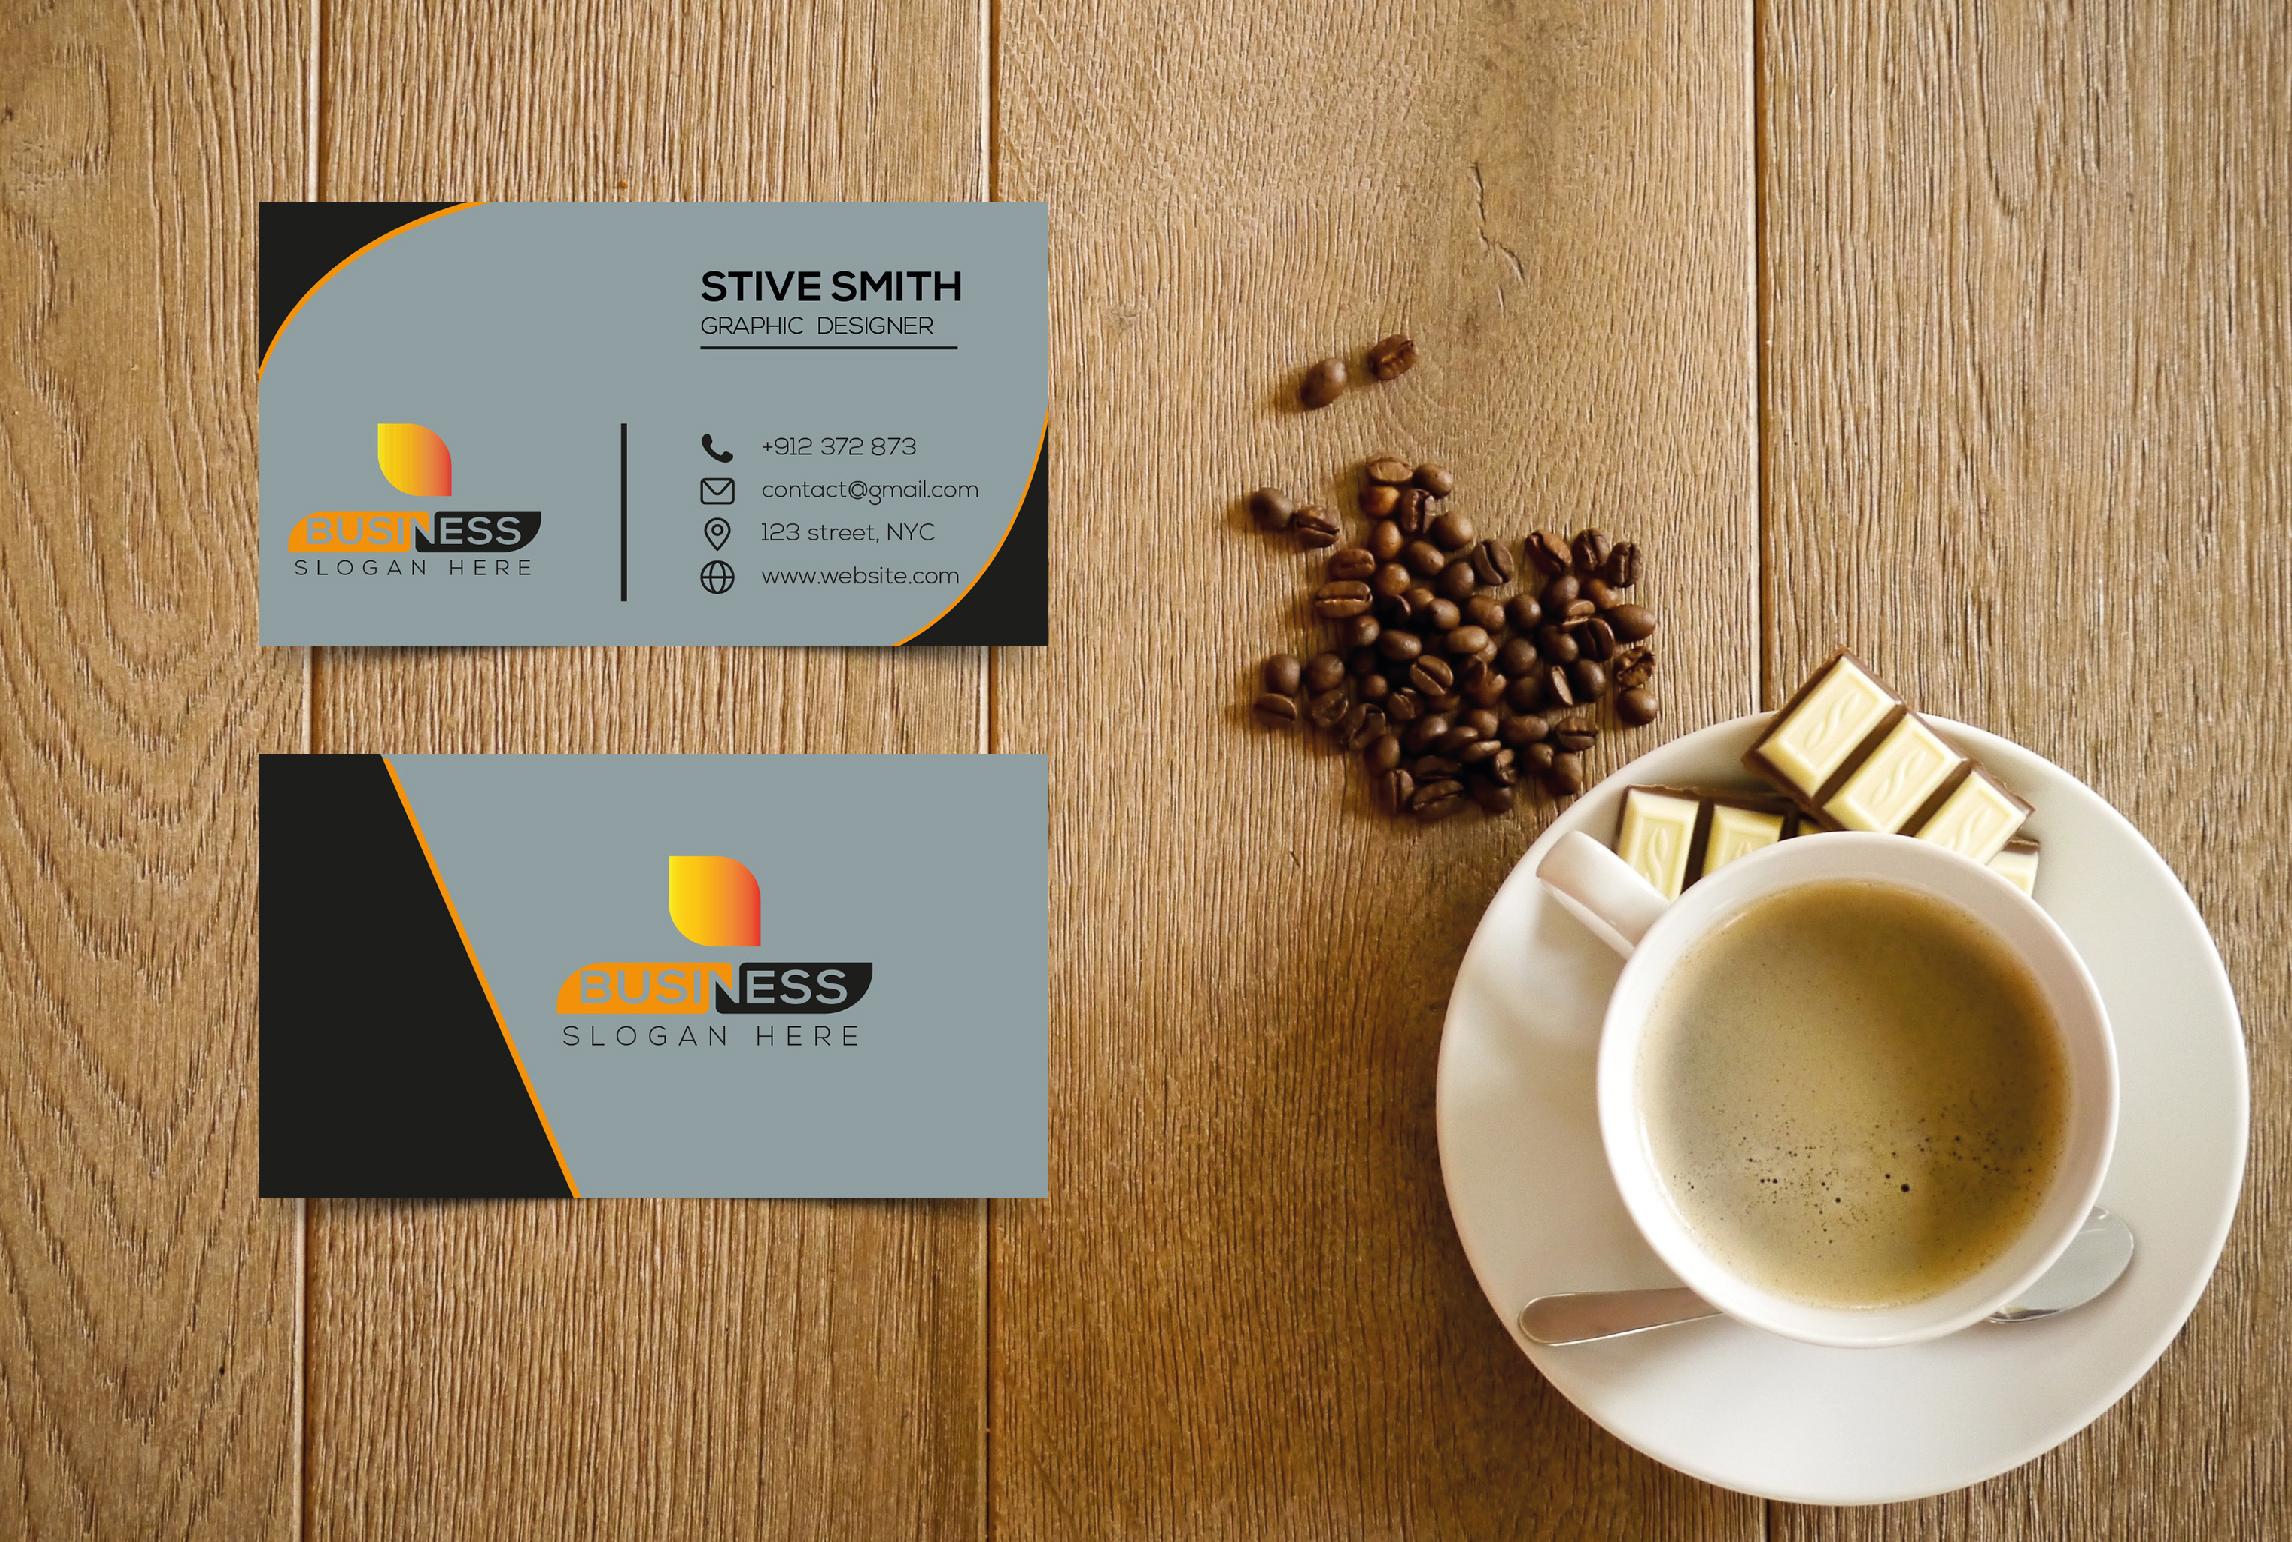 I will Create business card with two concepts